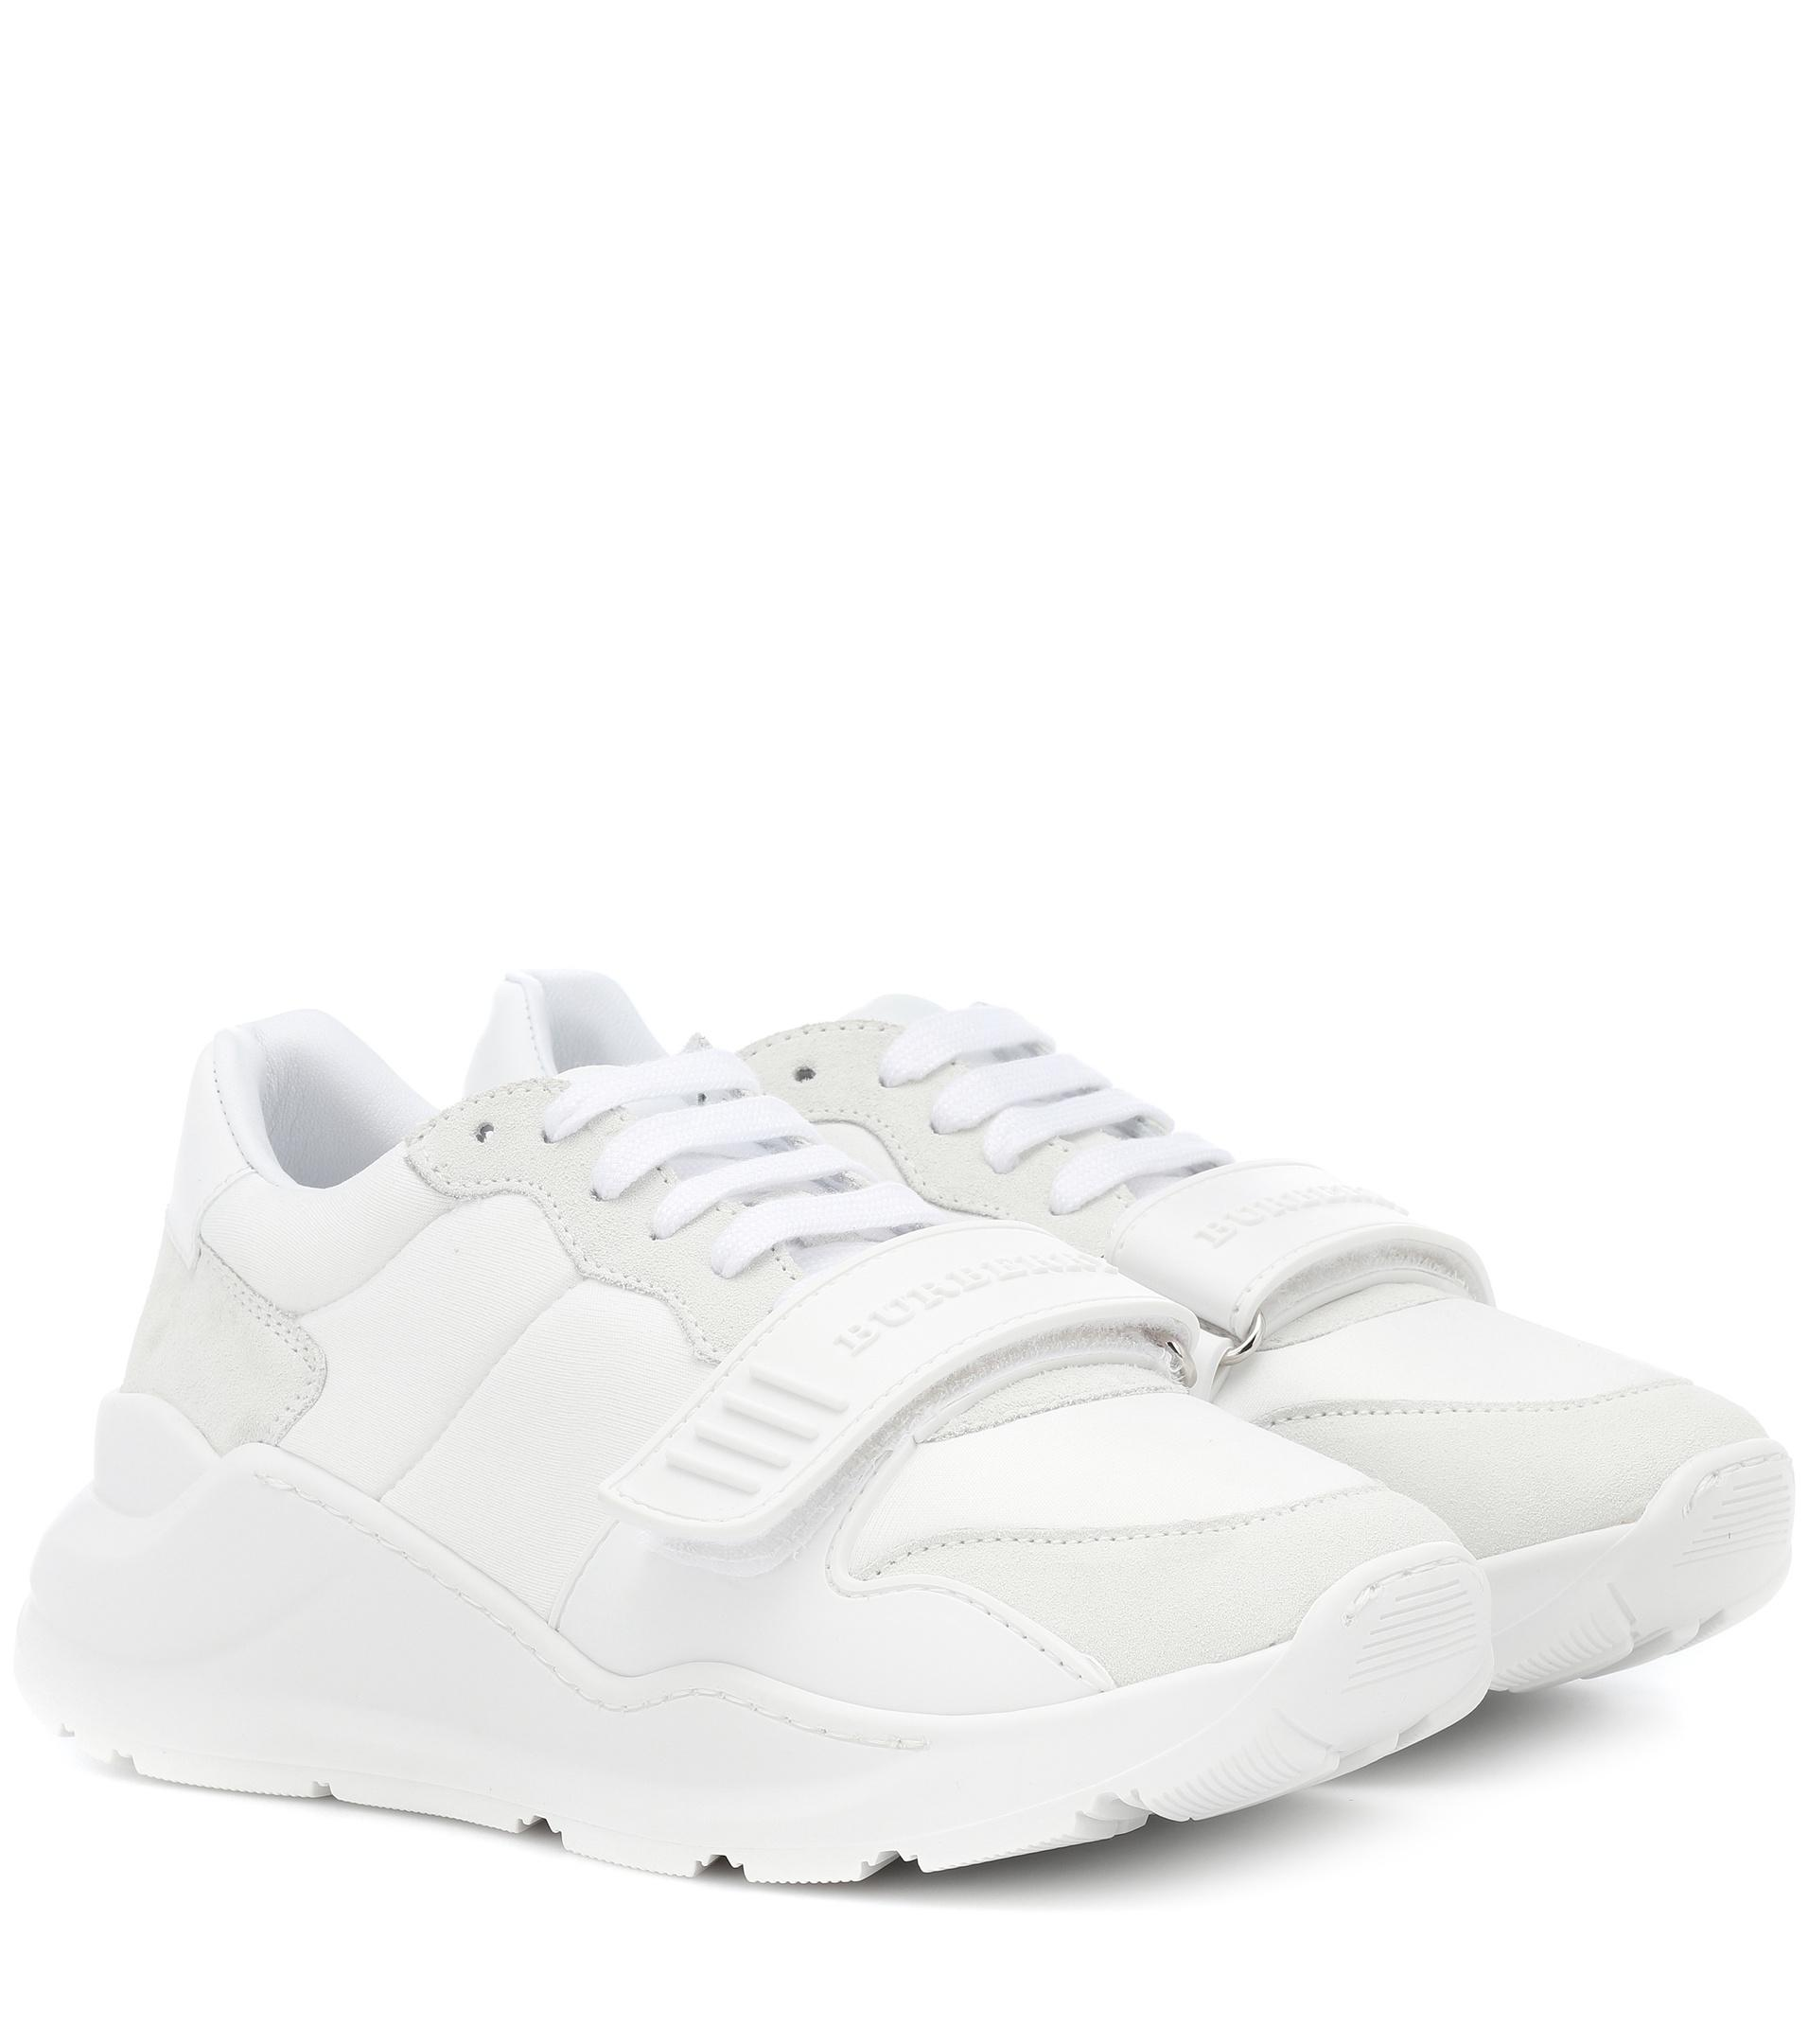 Lyst - Burberry Suede Leather And Neoprene Sneakers in White d474dbb4c